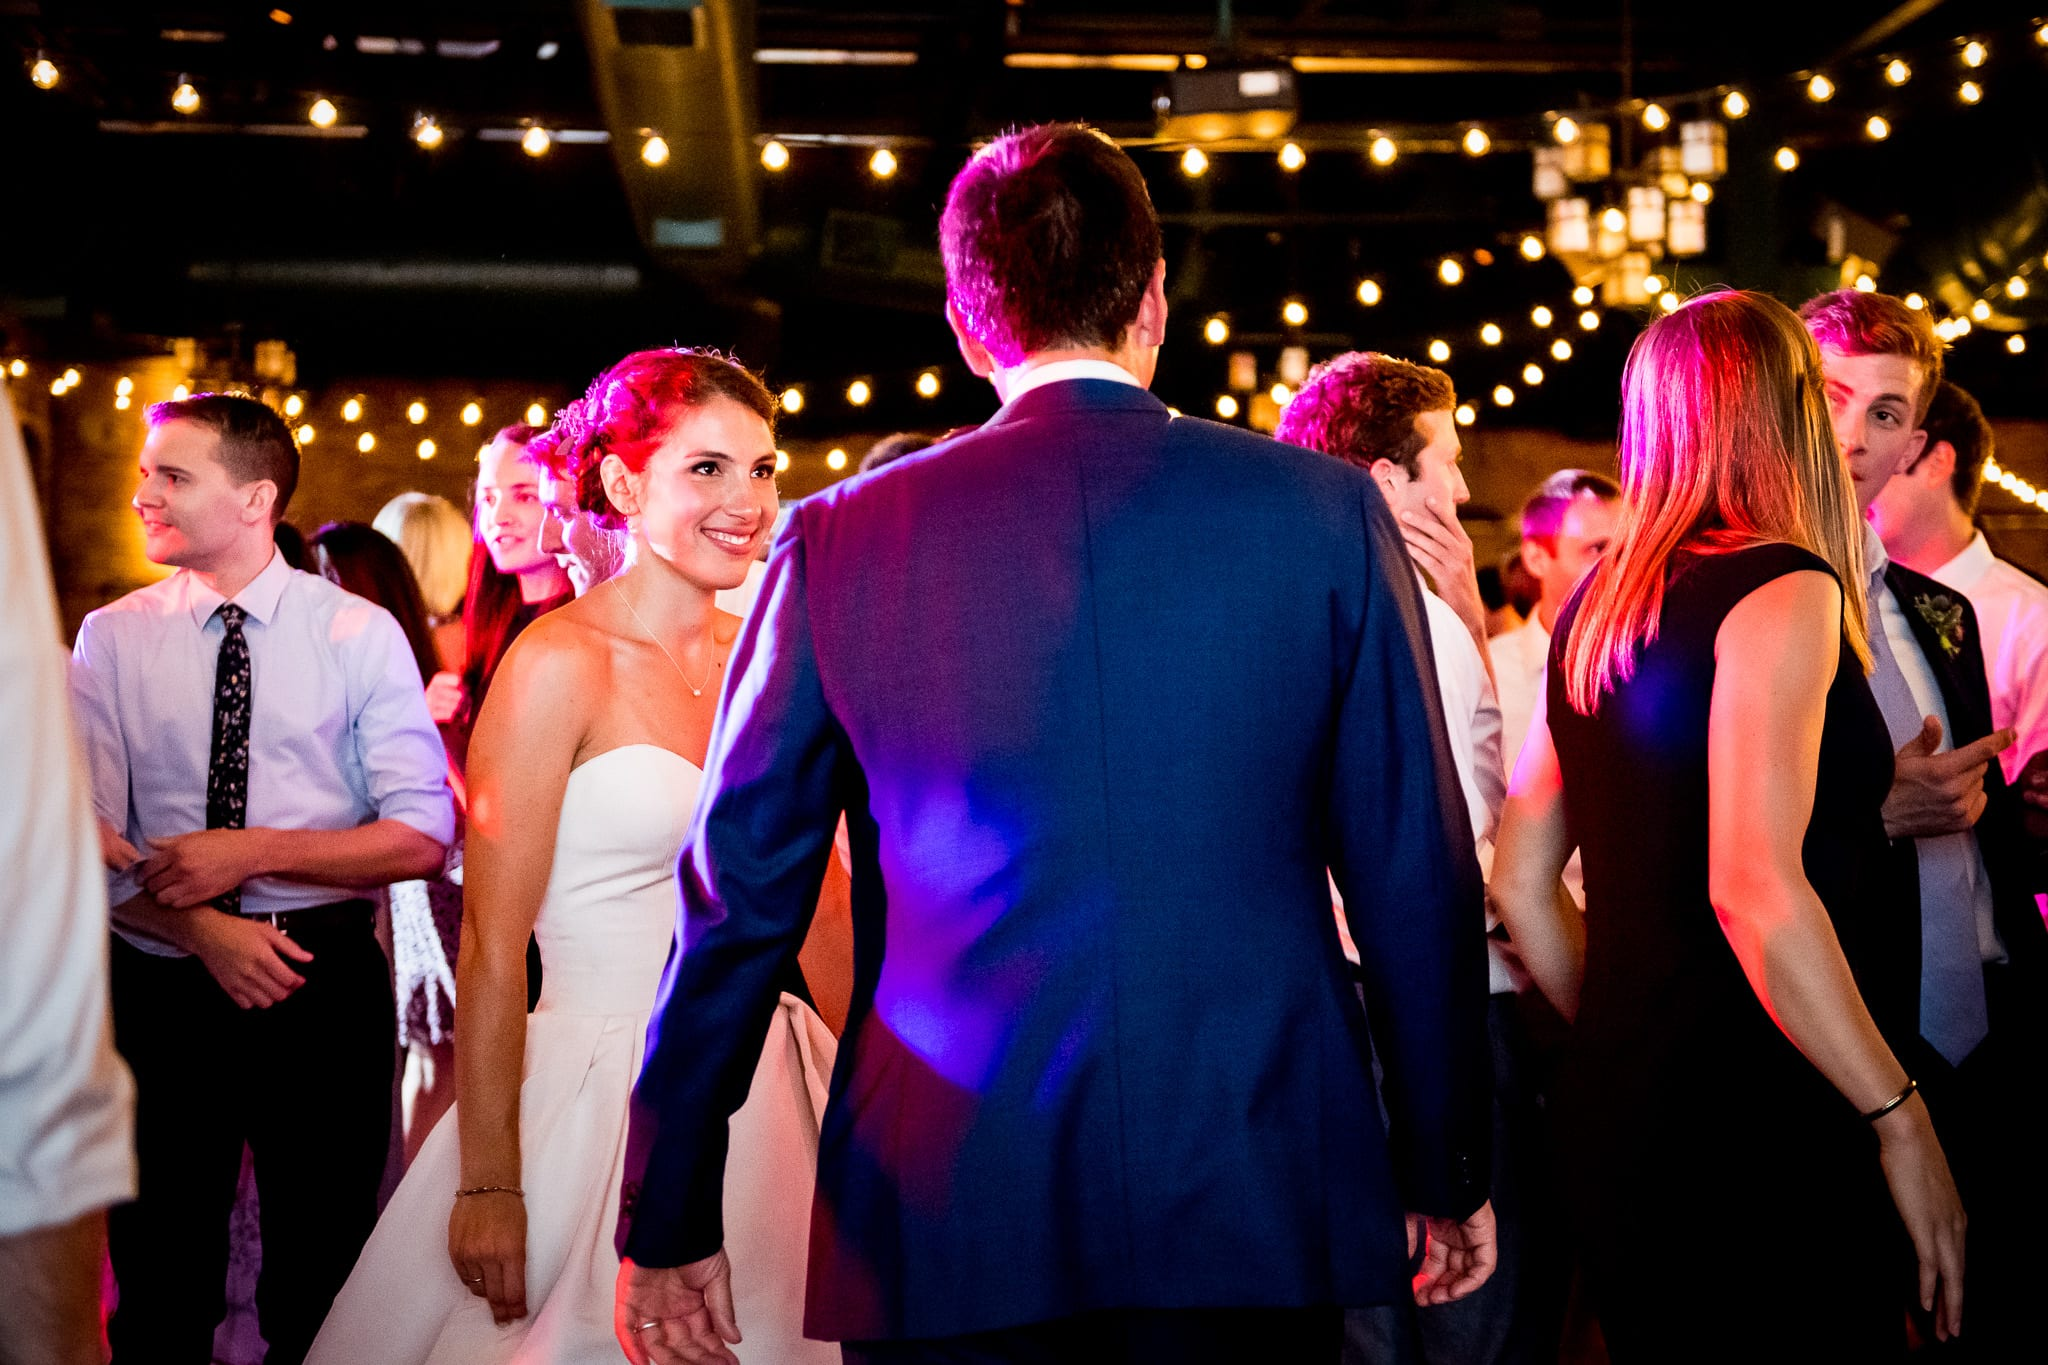 Bride looks intently at her groom on the dance floor with pink DJ lights shining brightly